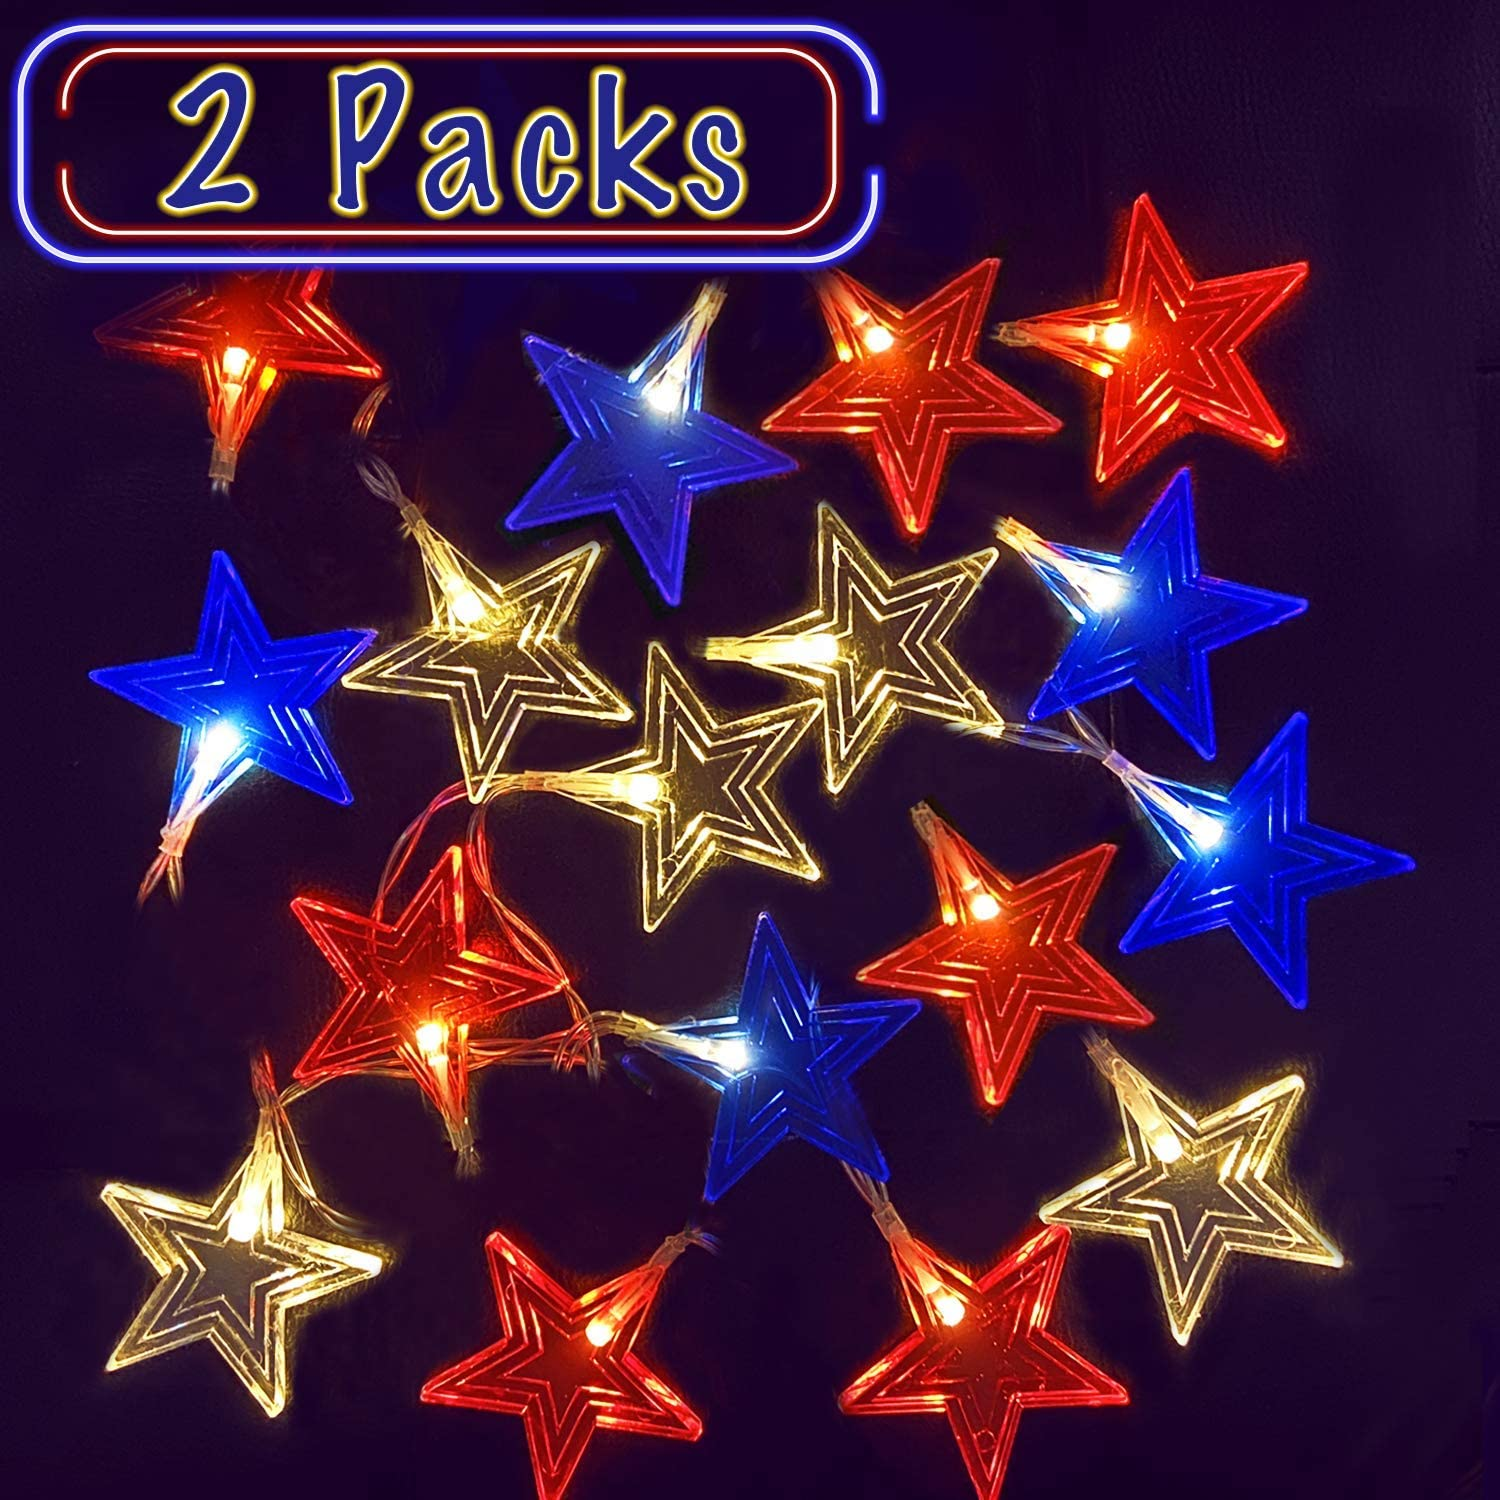 2 Pack LED Red White Blue String Indoor New product! New type Colorado Springs Mall LEDs Lights 7.6Ft Bat 16